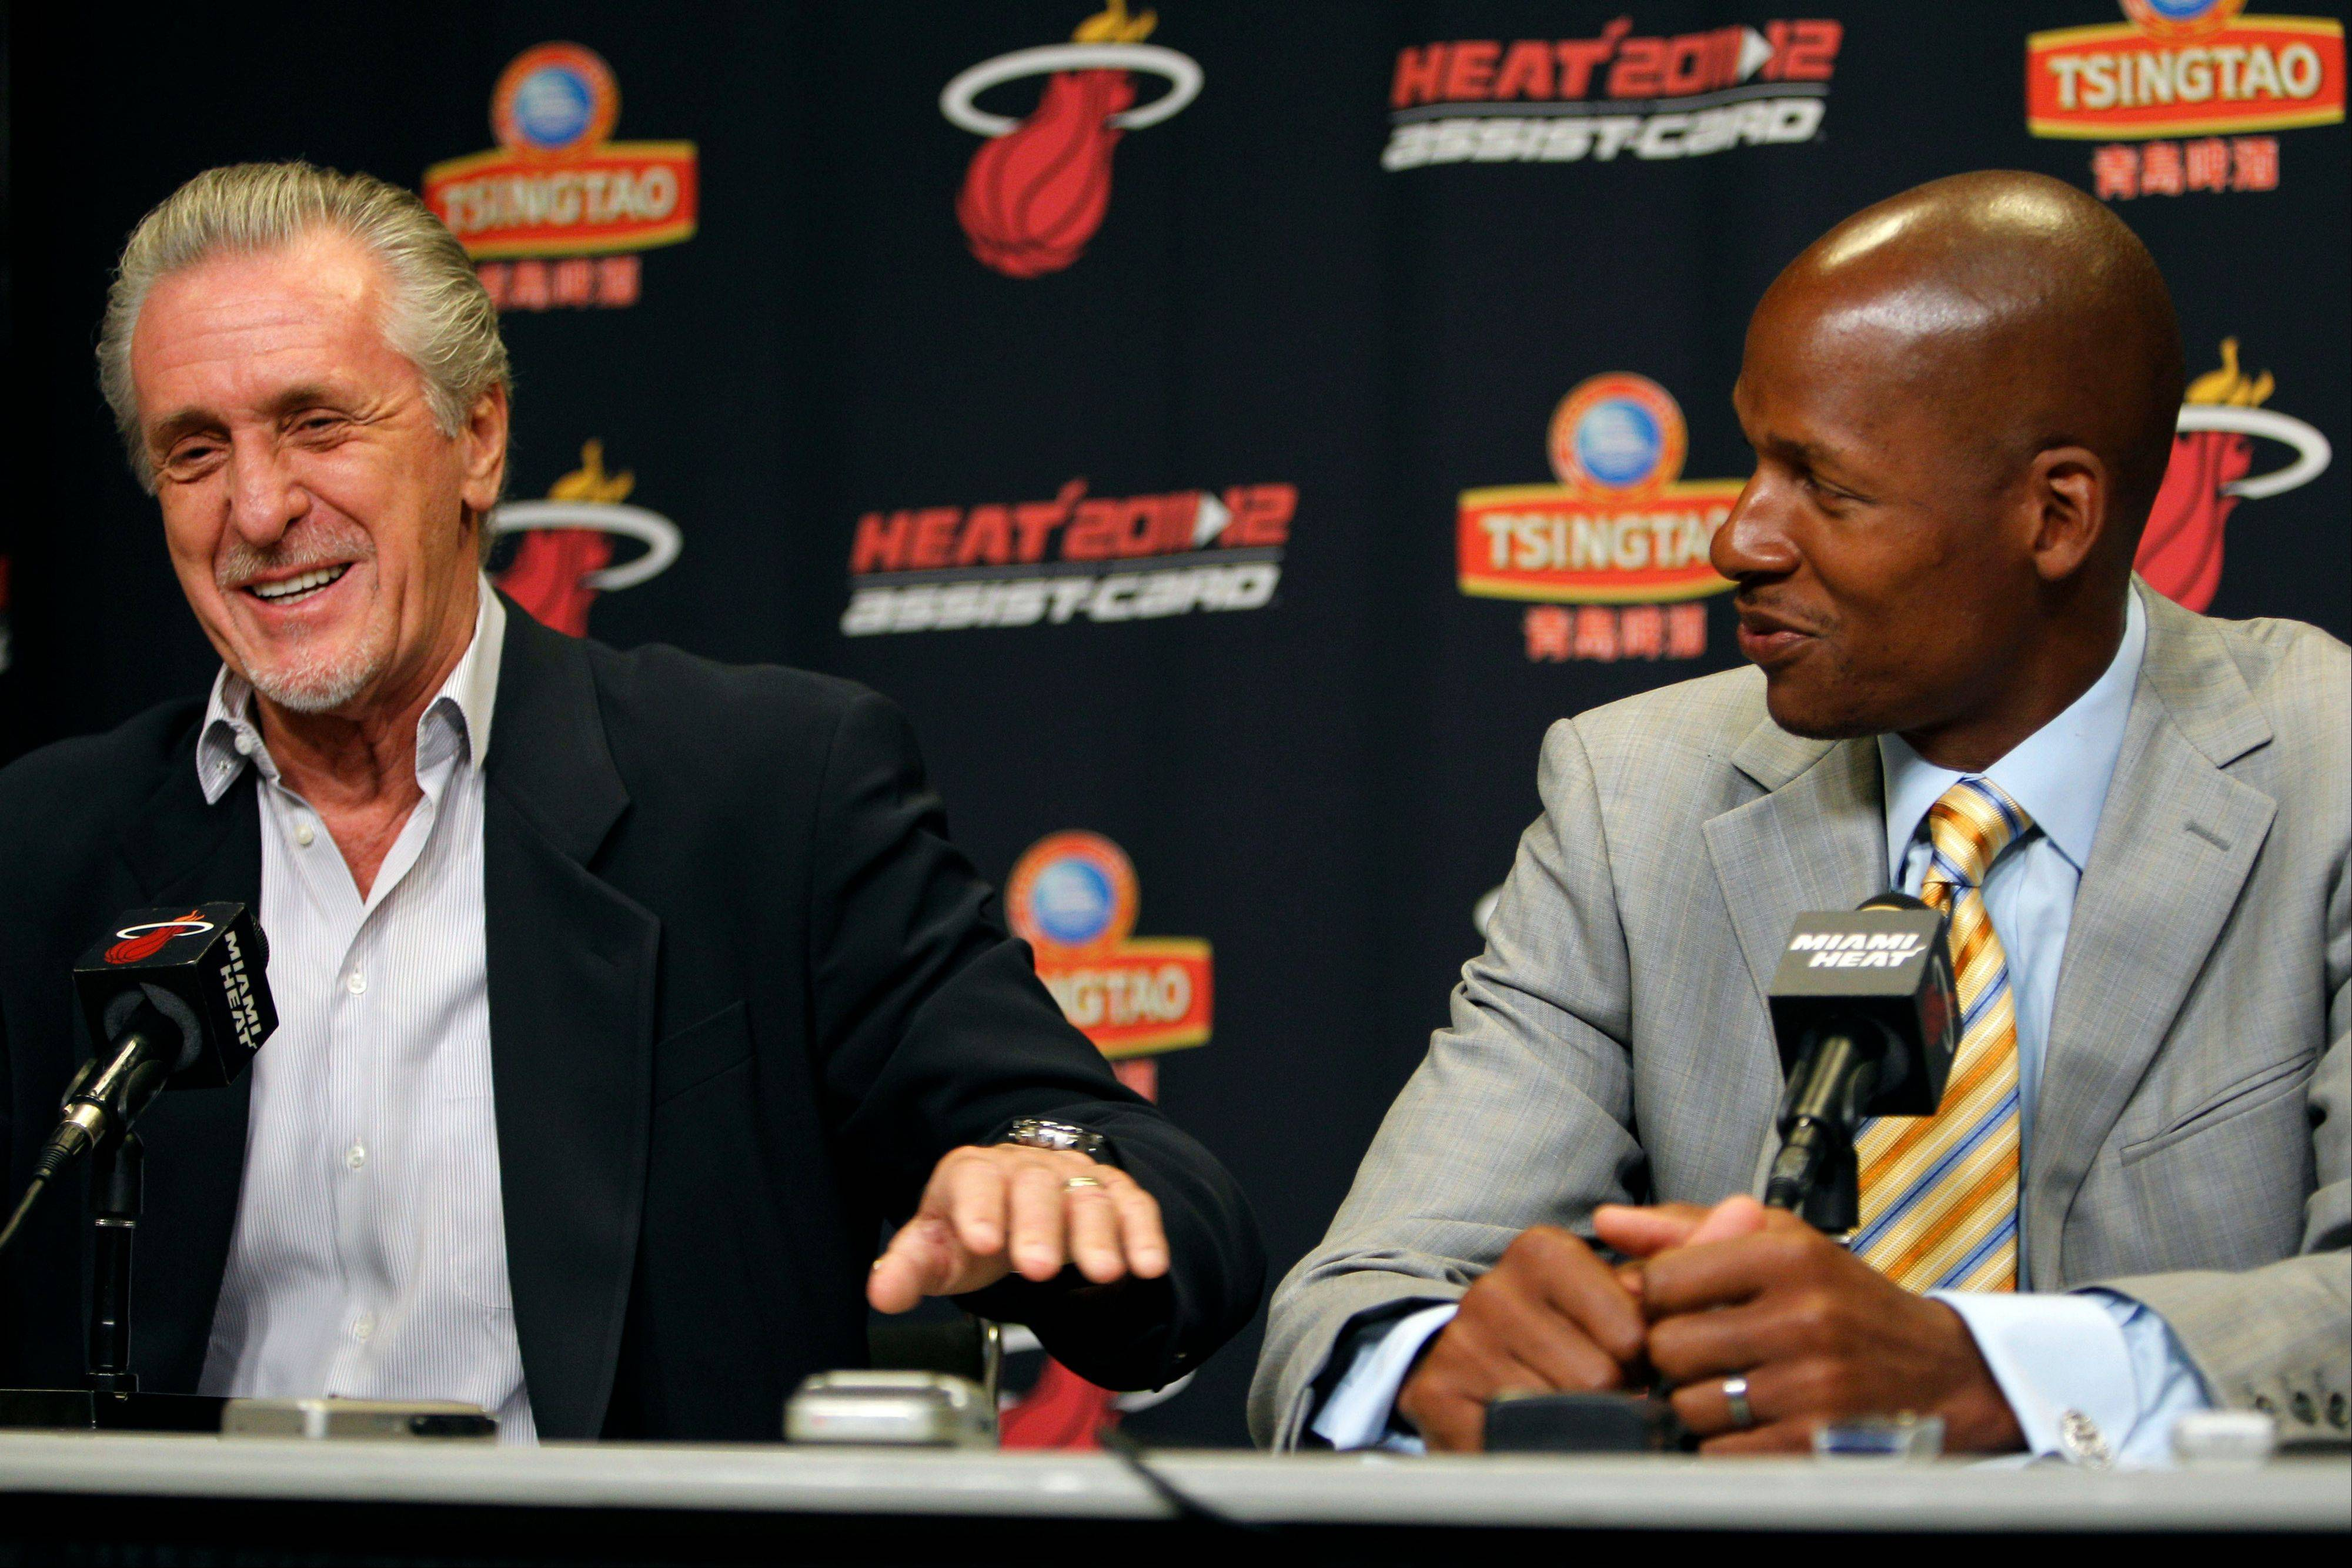 Miami Heat president Pat Riley, left, sits with guard Ray Allen, right, Wednesday during a news conference after Allen signed a contract with the Heat.